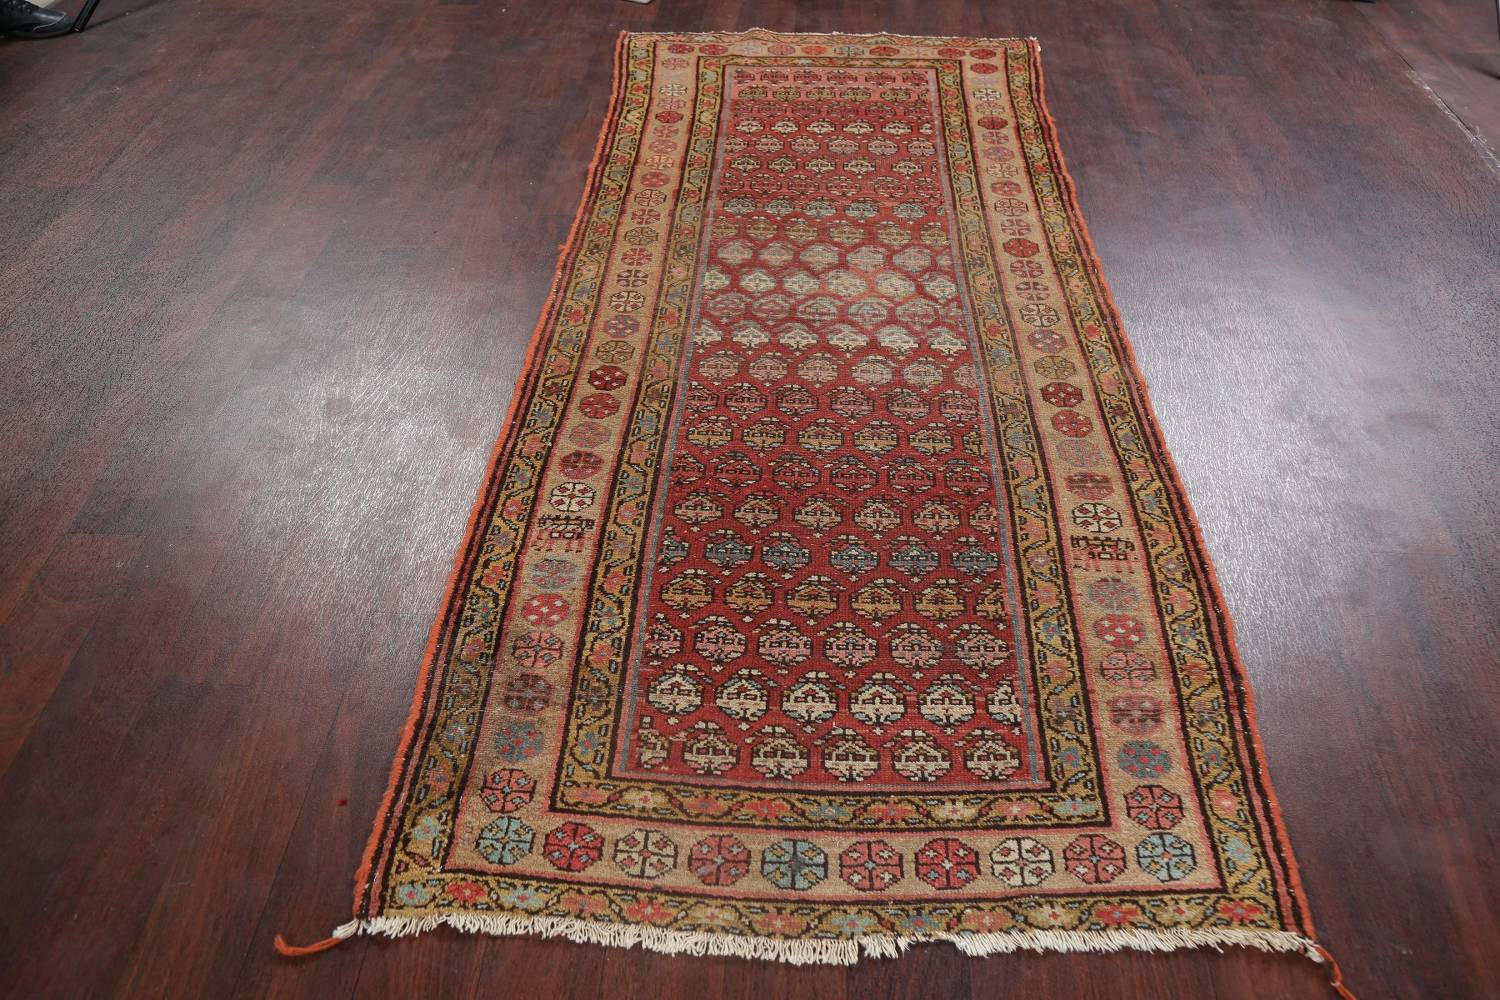 Pre-1900 Antique Vegetable Dye Malayer Persian Rug 3x8 image 17